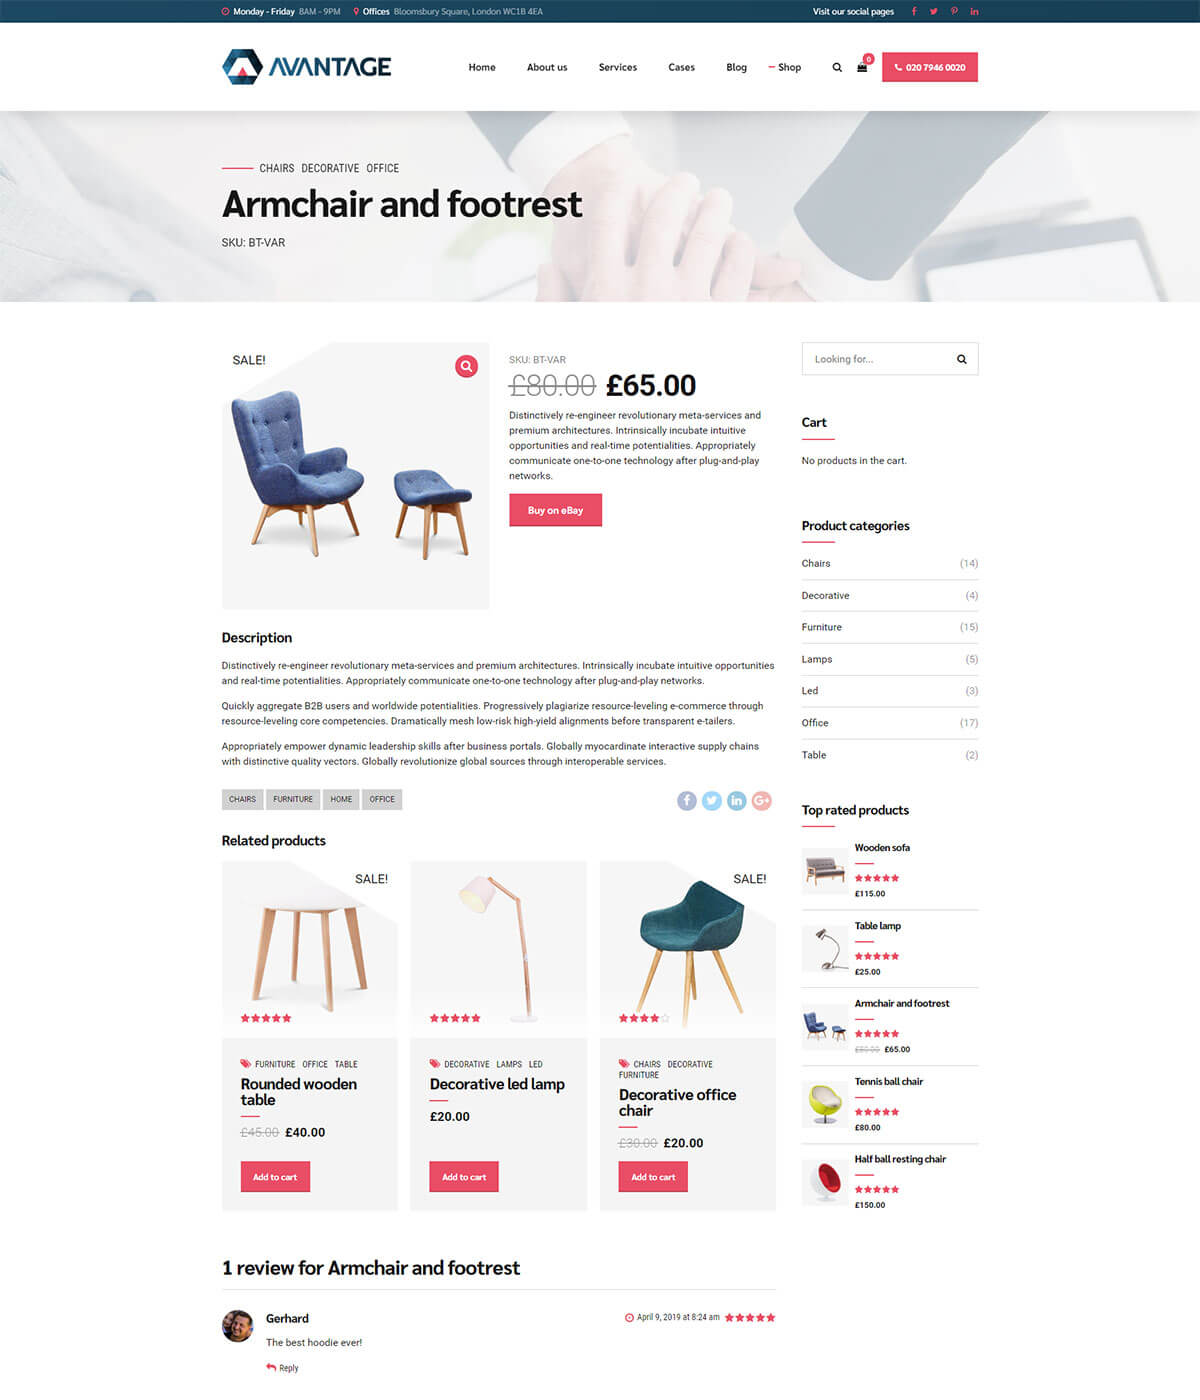 http://avantage.bold-themes.com/wp-content/uploads/2019/05/business-15-product.jpg